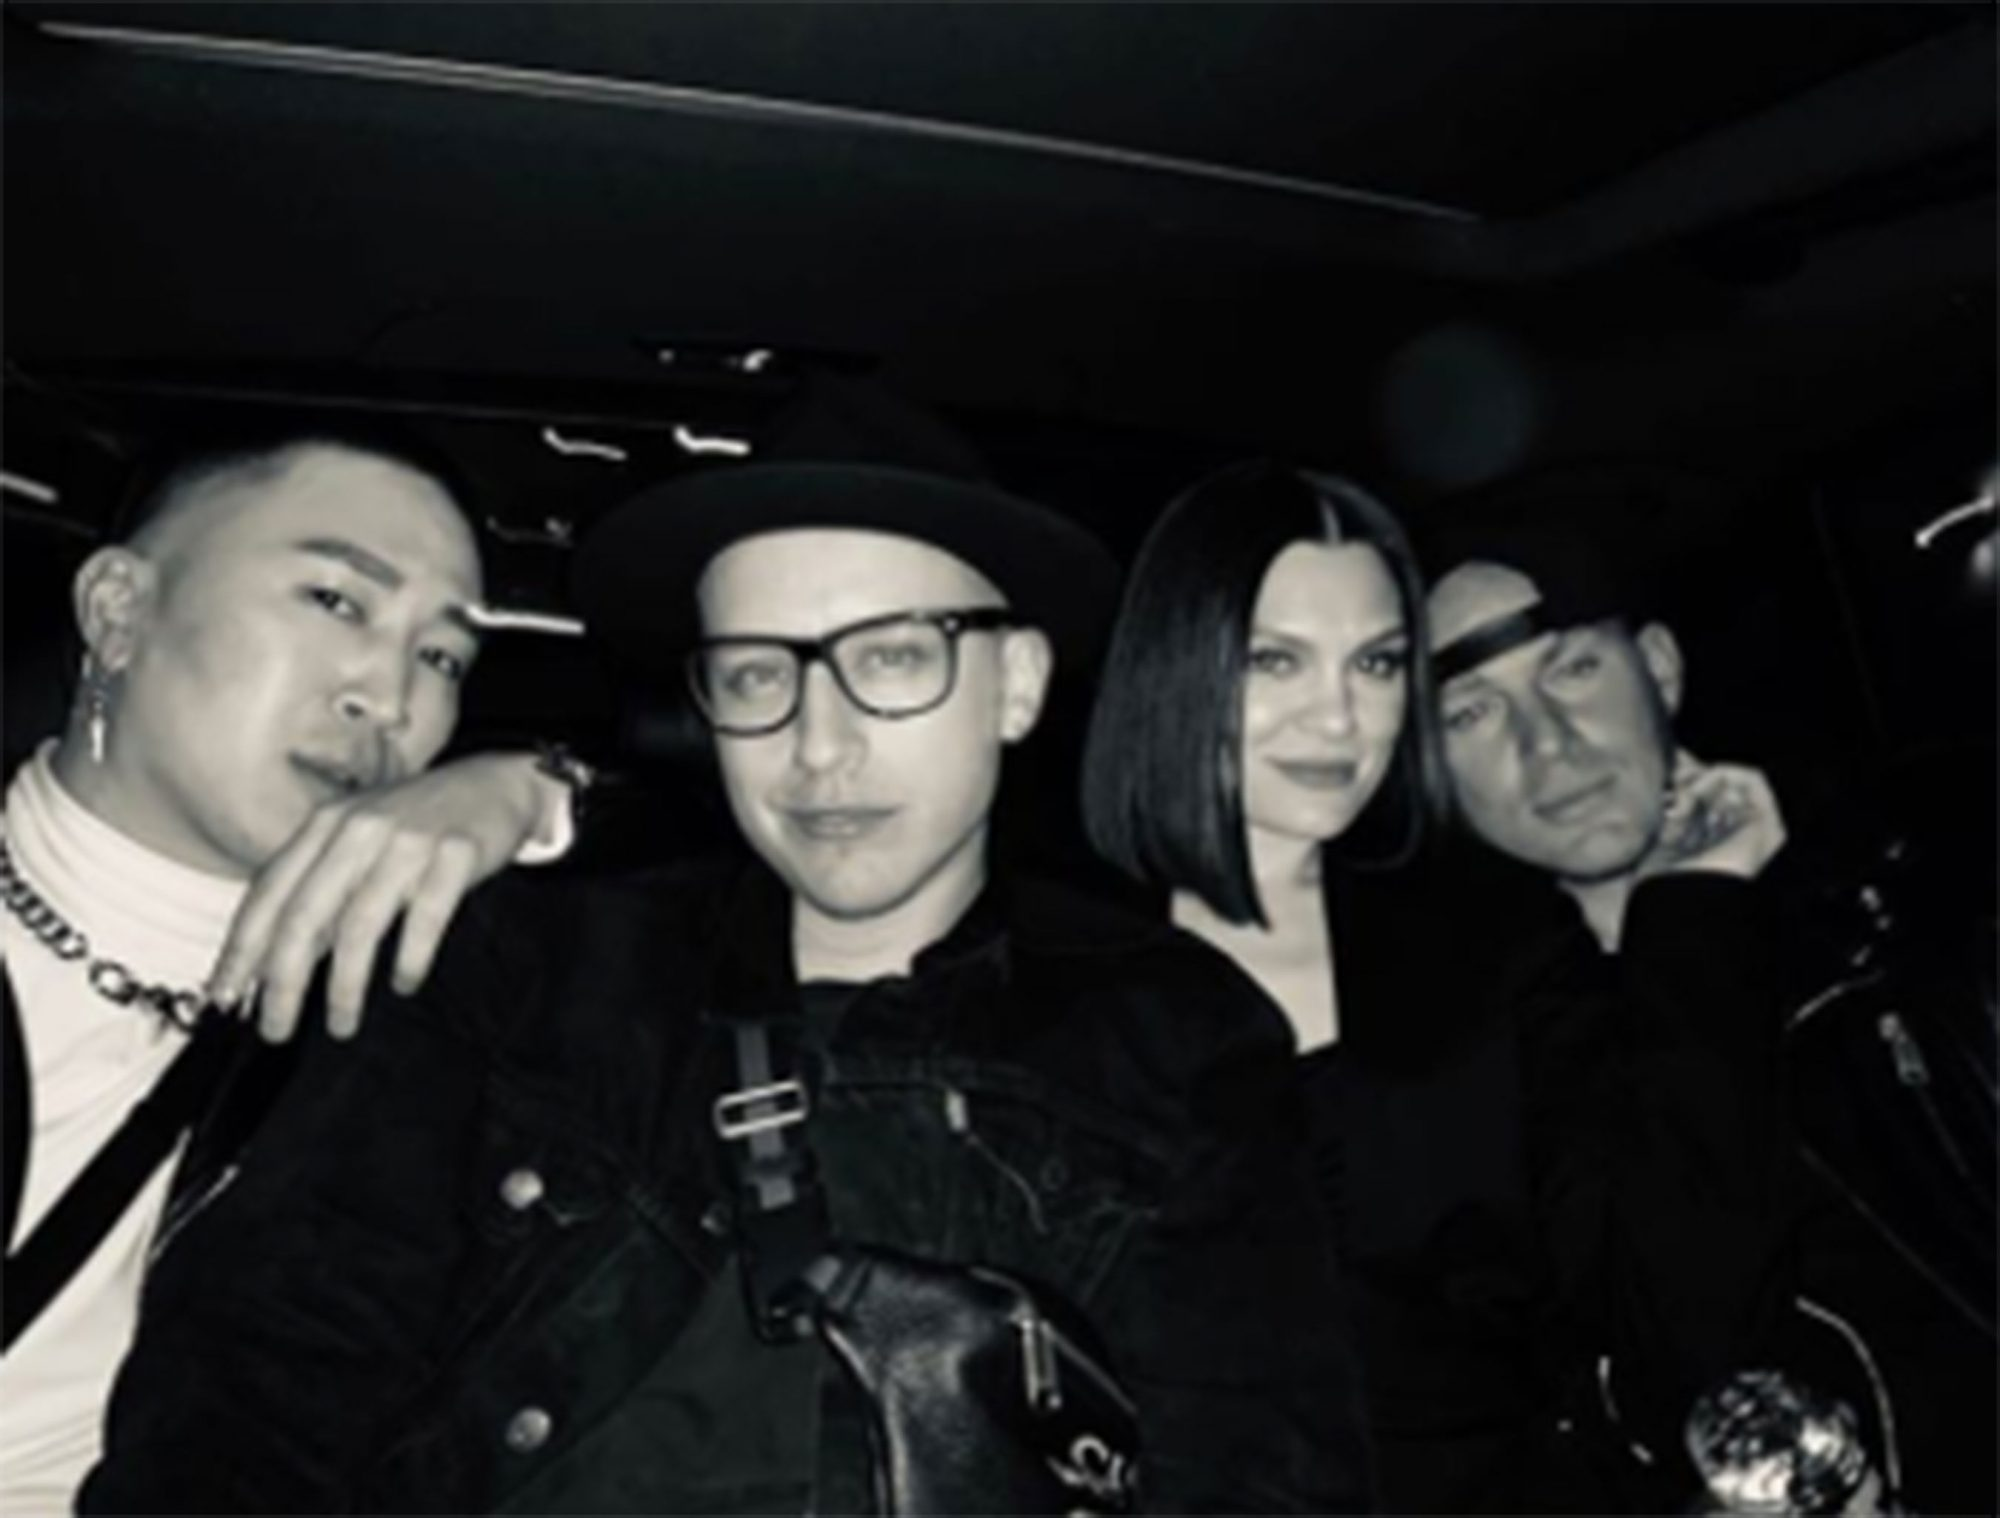 Channing Tatum Jessie J date nightCredit: Jessie J/Instagram